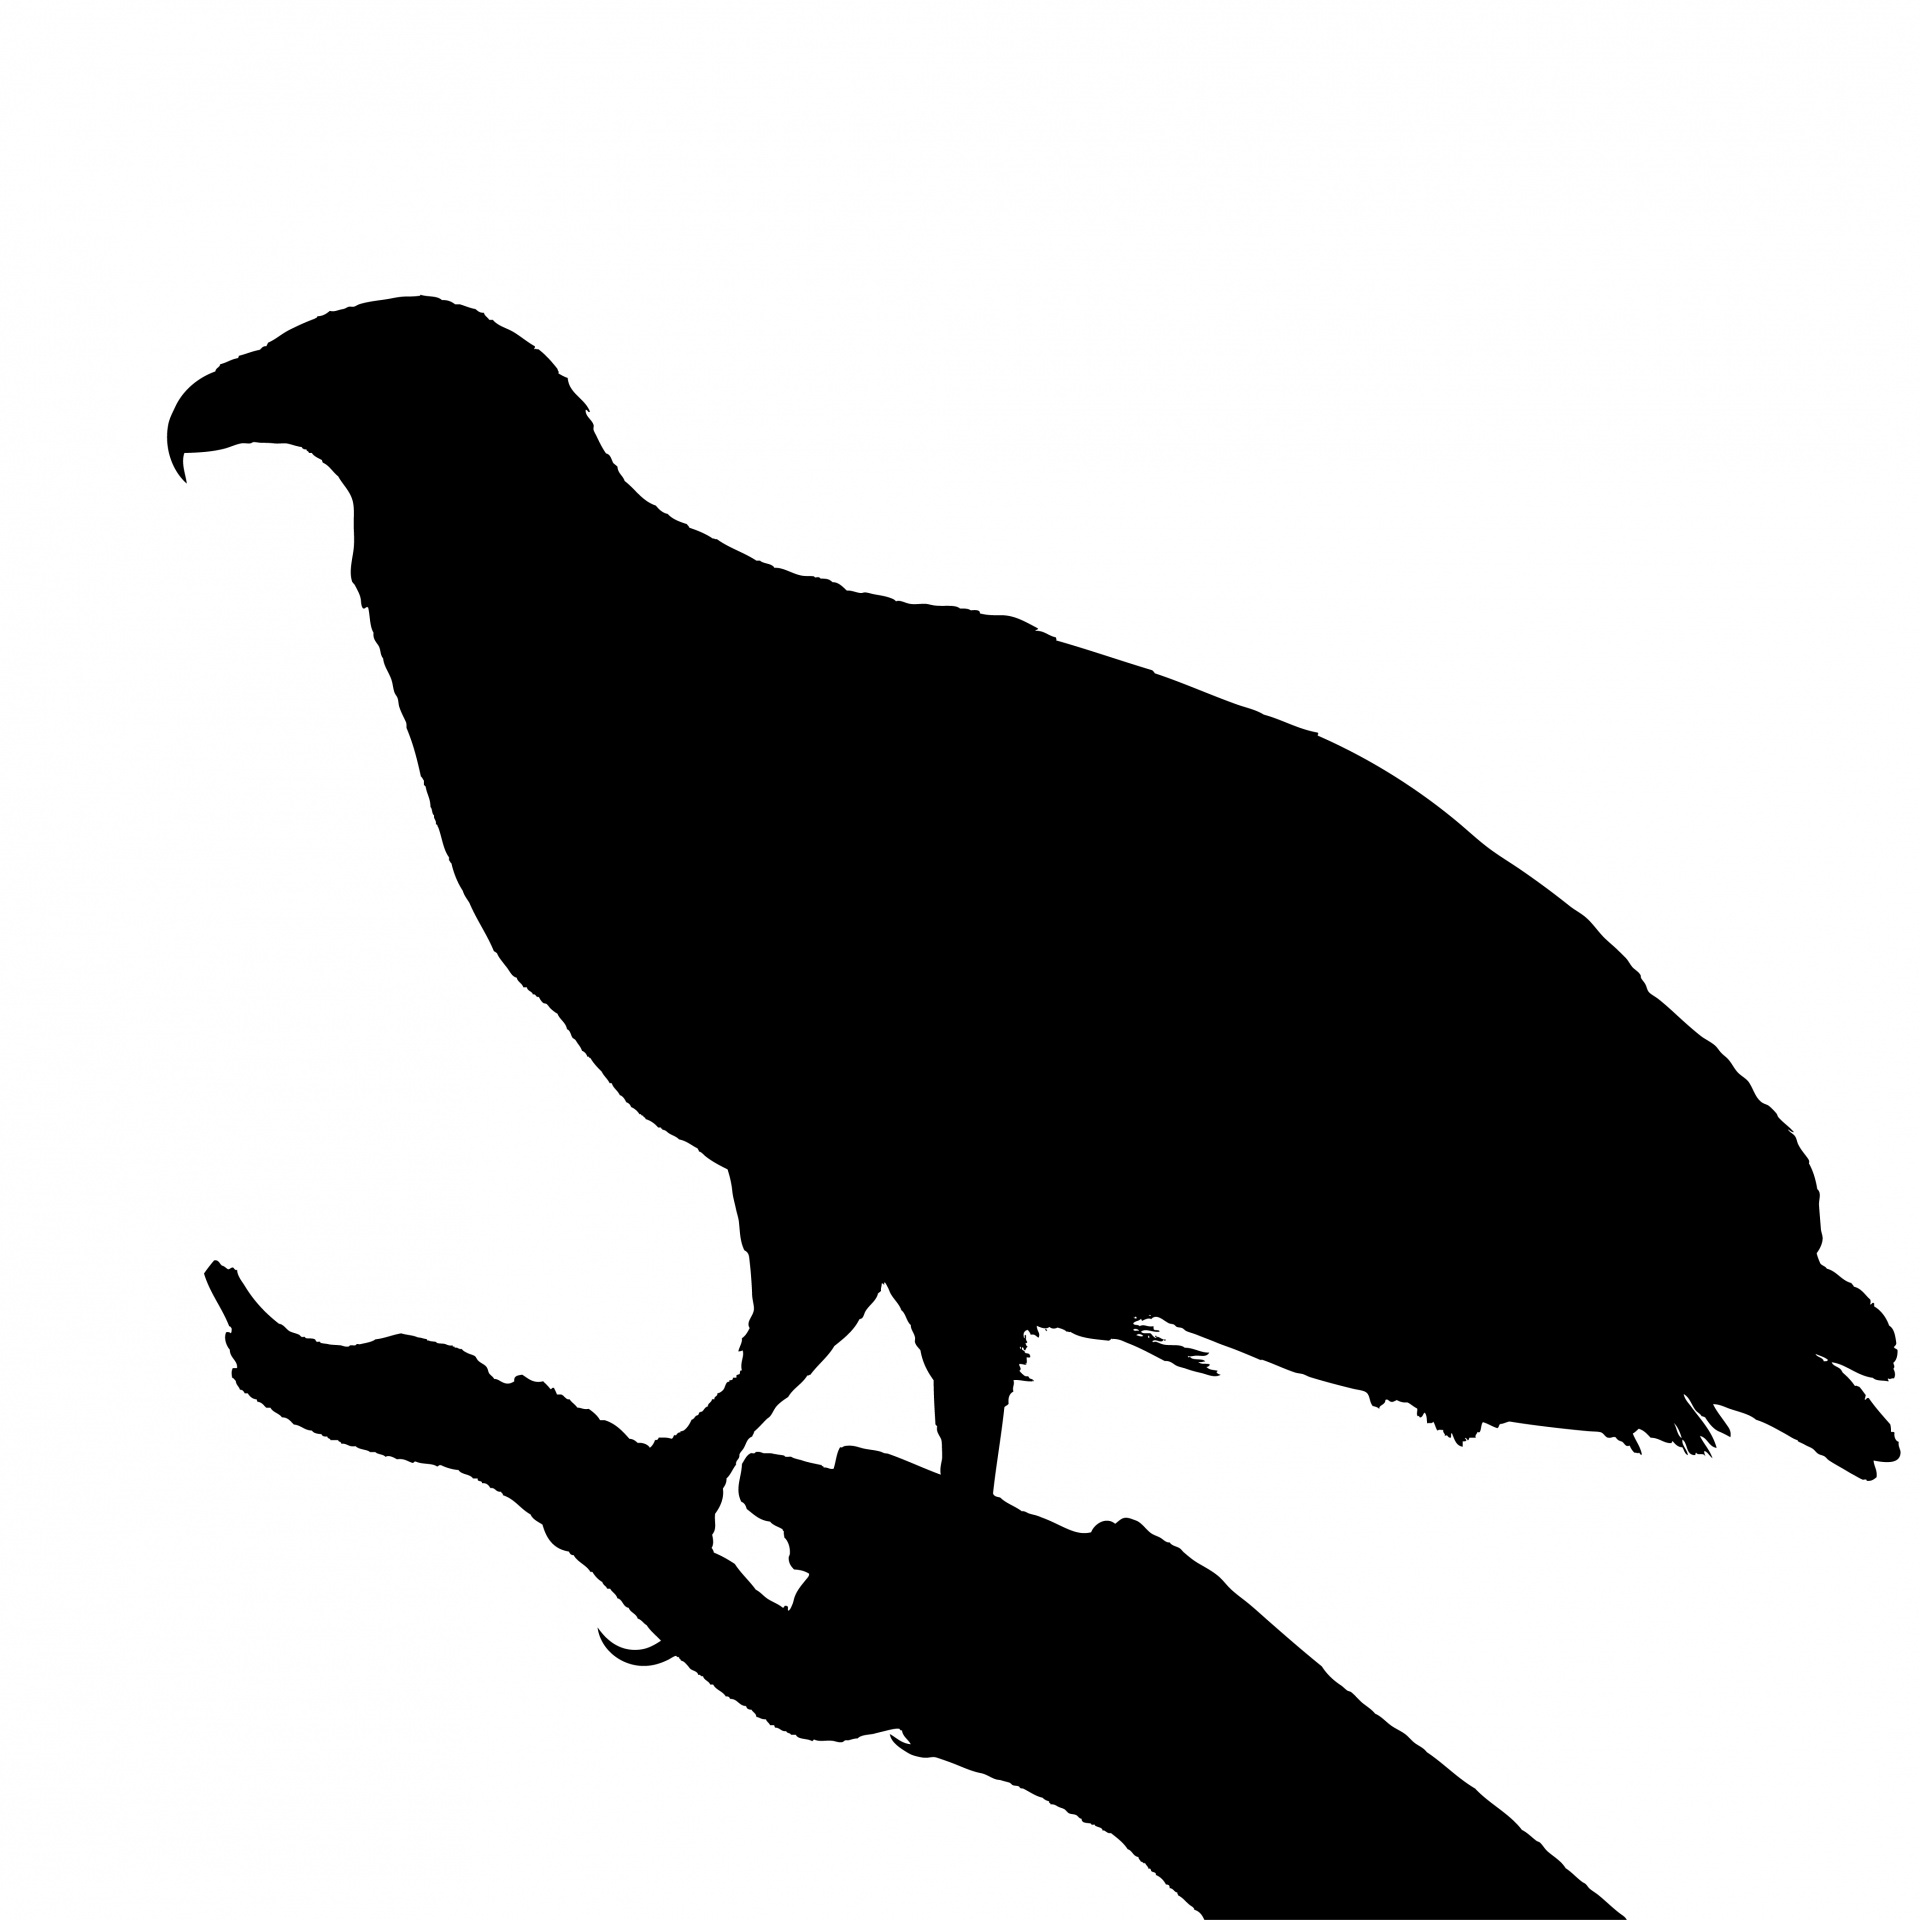 vulture silhouette turkey vulture silhouette at getdrawings free download silhouette vulture